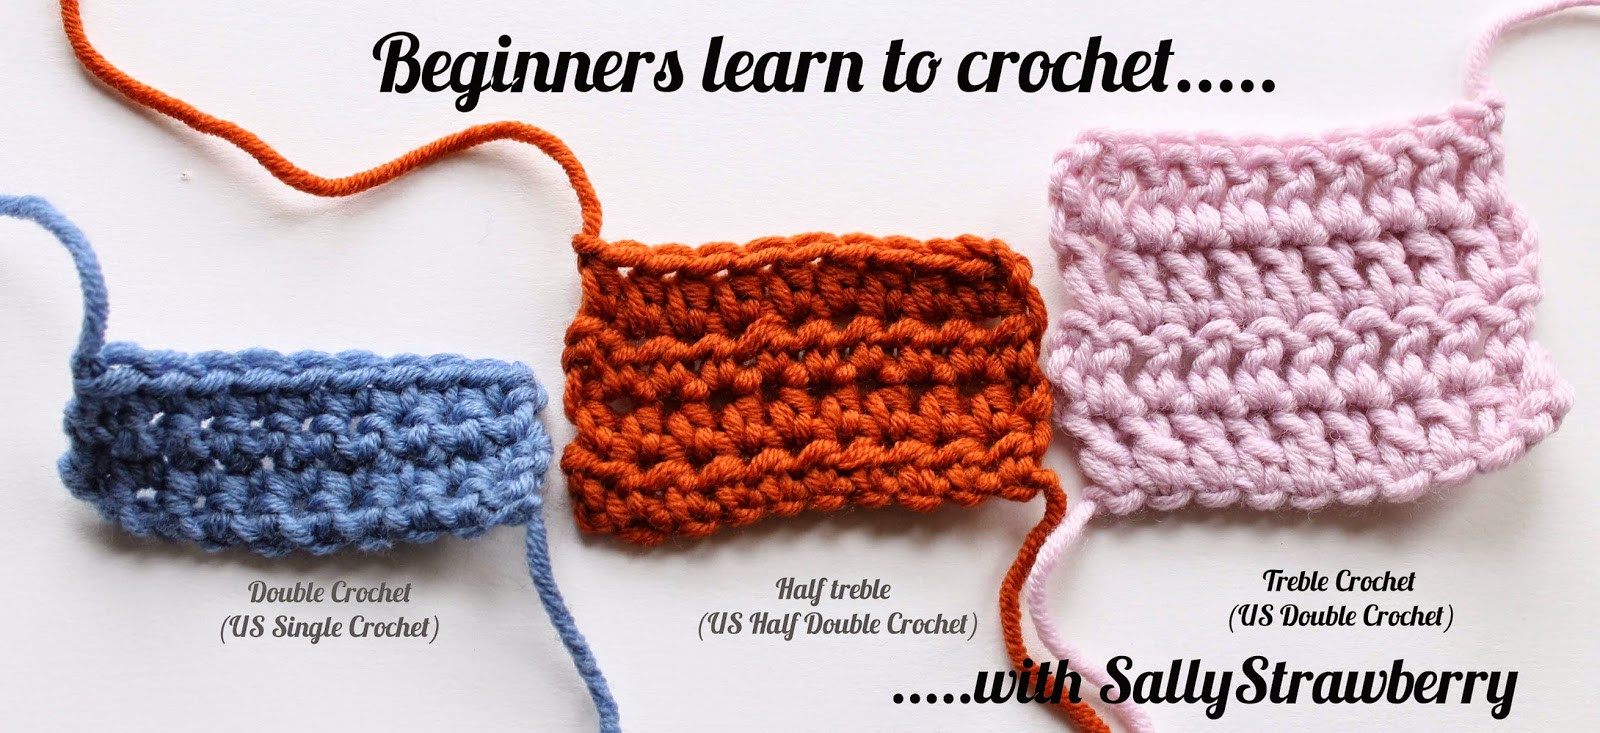 Crochet for Beginners Awesome Sallystrawberry Beginners Learn to Crochet the Treble Of Perfect 48 Ideas Crochet for Beginners